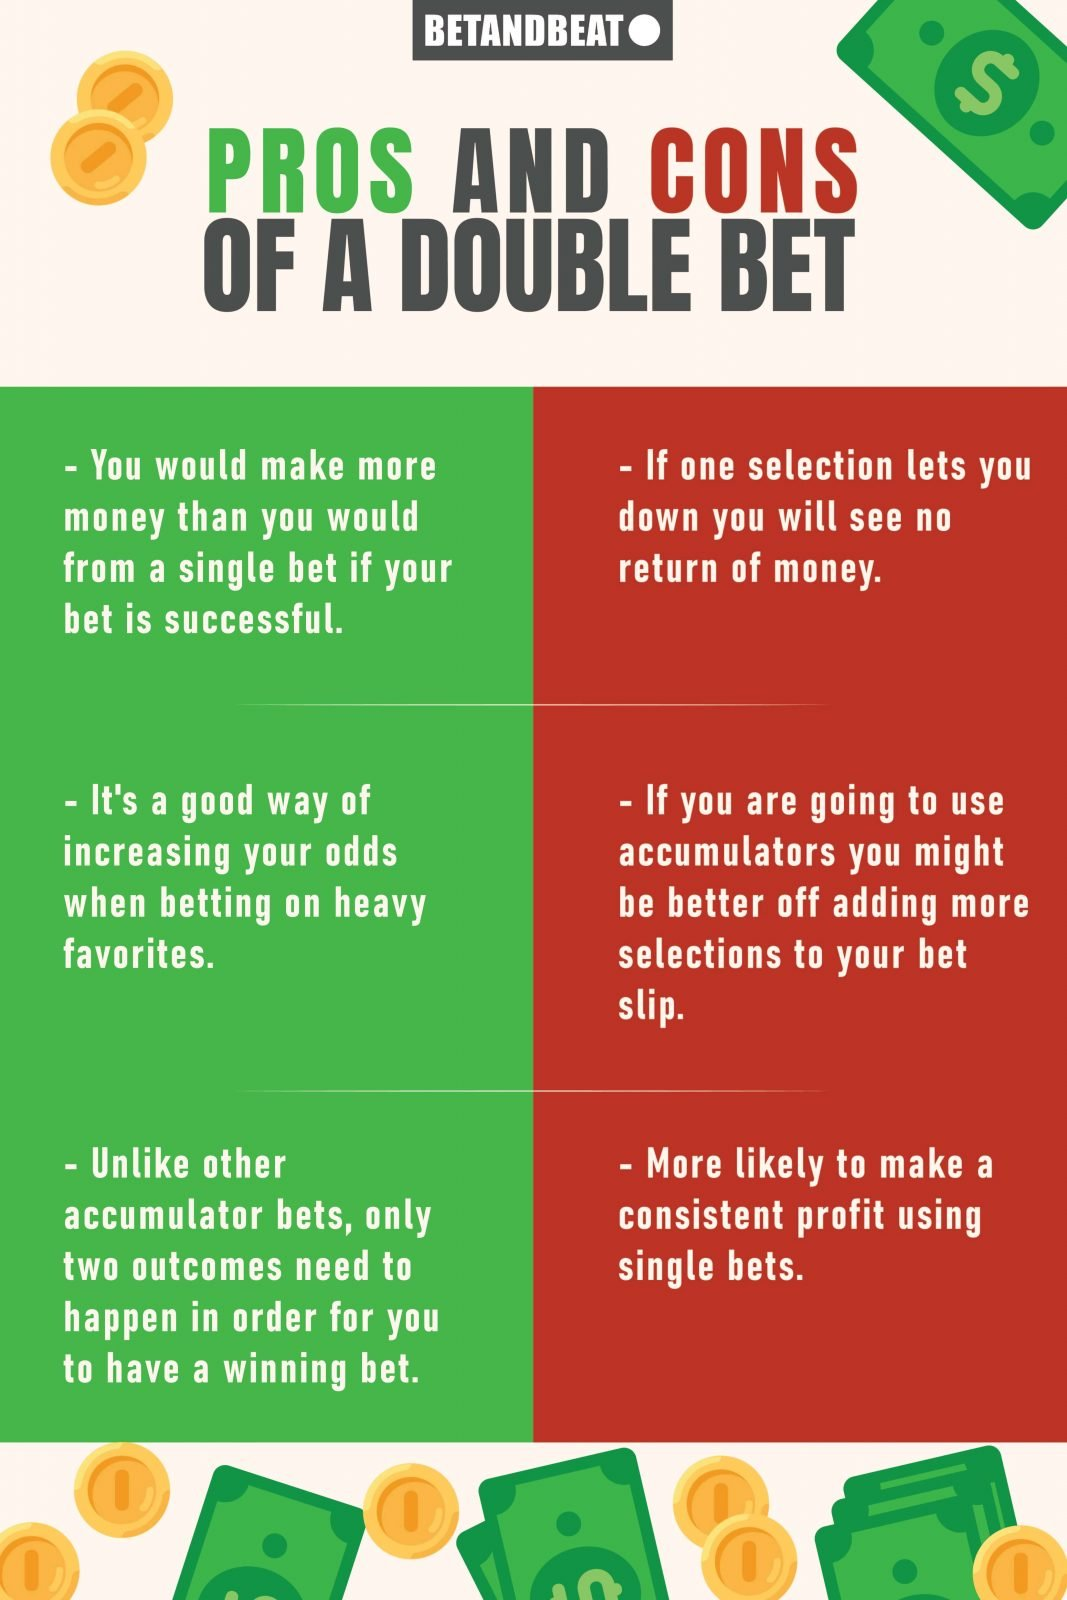 Pros & Cons of Double Bets